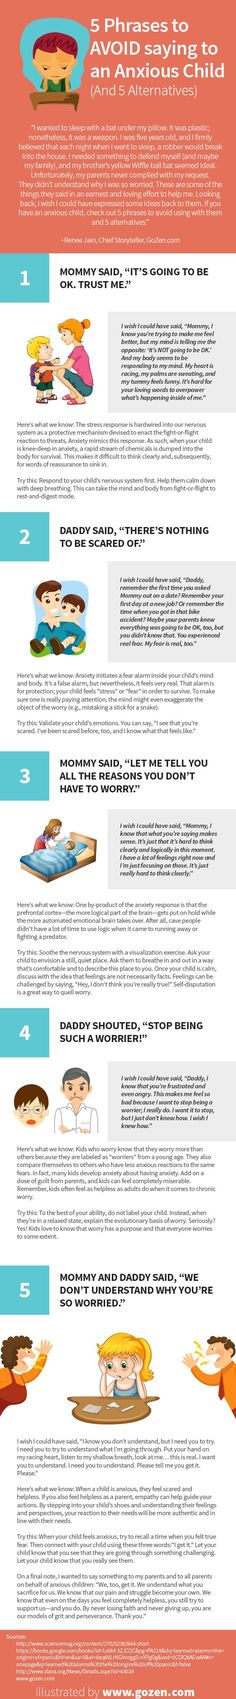 This infographic tells a story about how parents-with great love and affection-try to help their anxious children. It also tells a silent tale about what those children wish they could express to their parents about what they are experiencing.